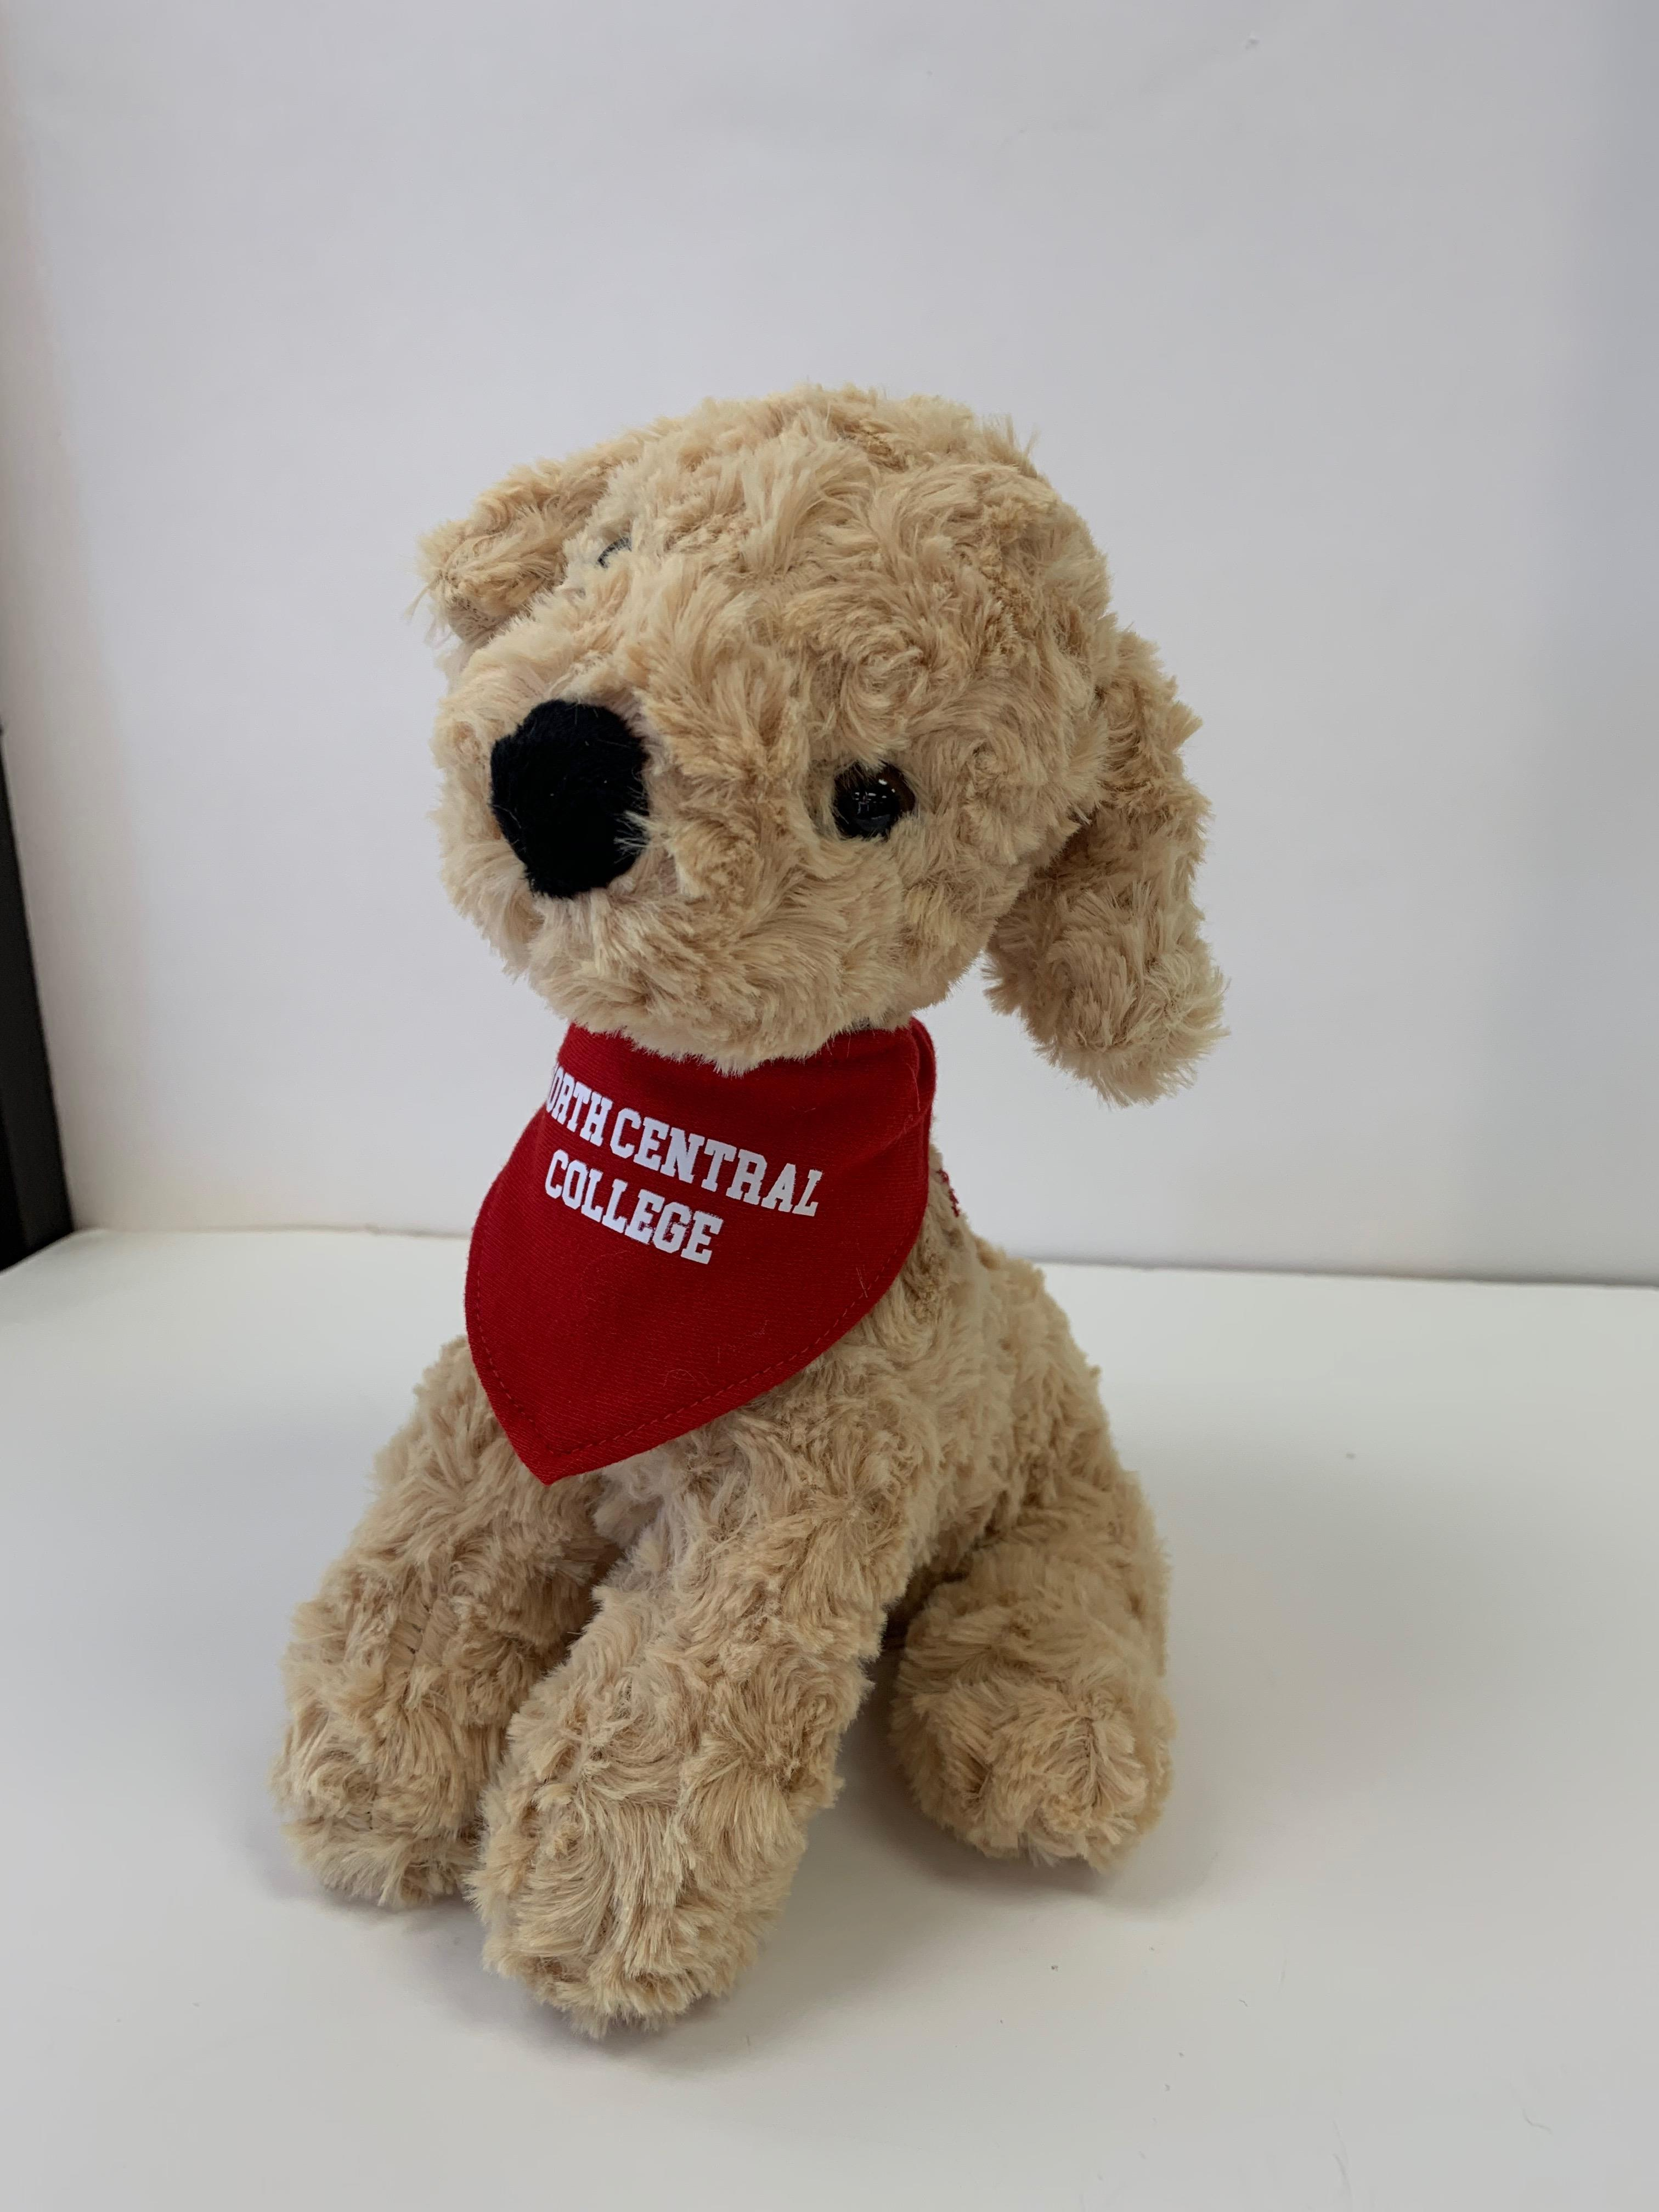 Image for the Mighty Tykes Plush Golden Retriever product